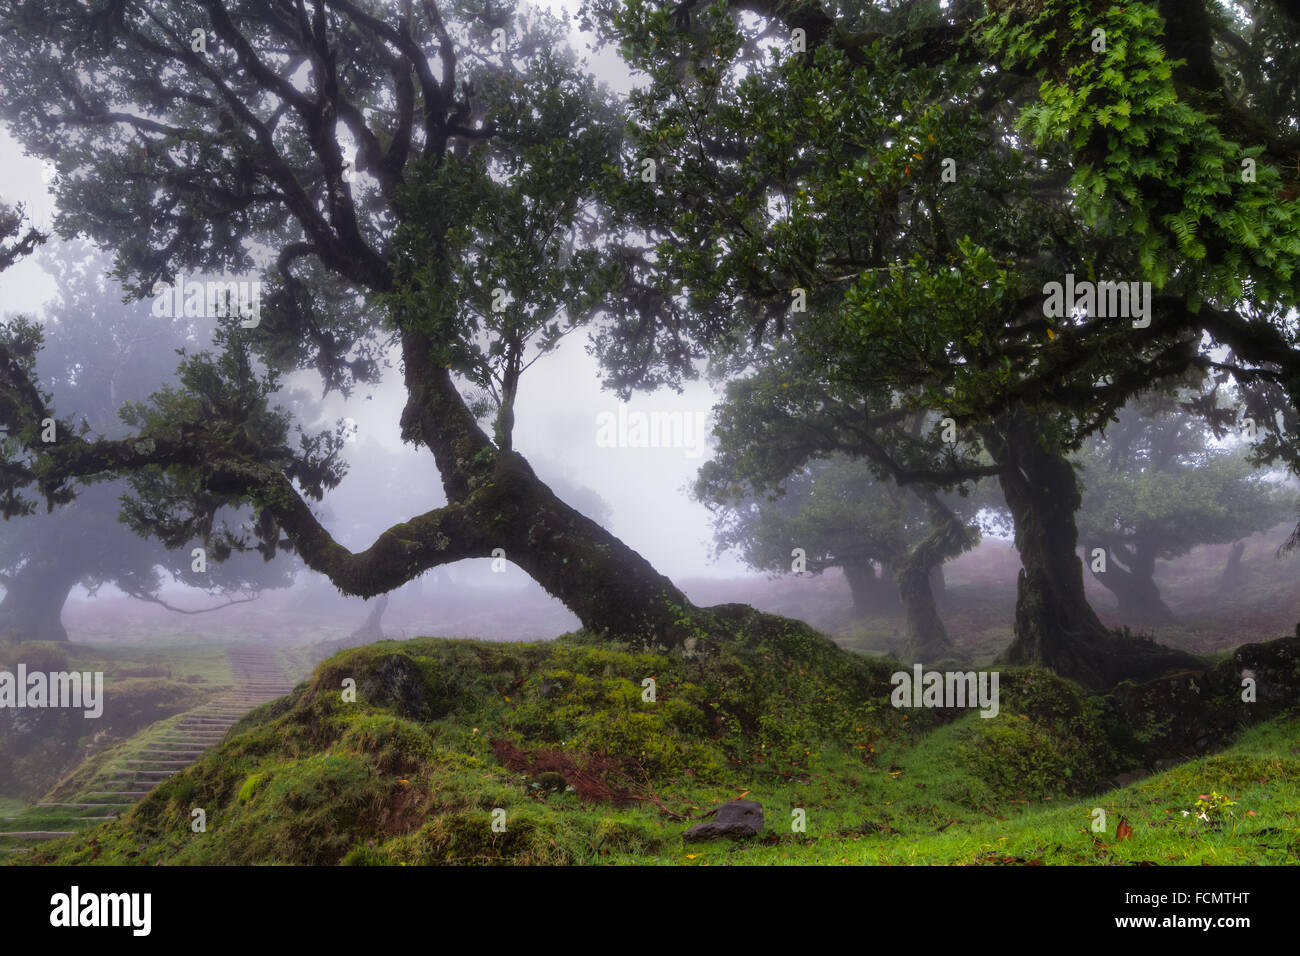 Ancient laurel forest in the fog, Madeira, Portugal - Stock Image